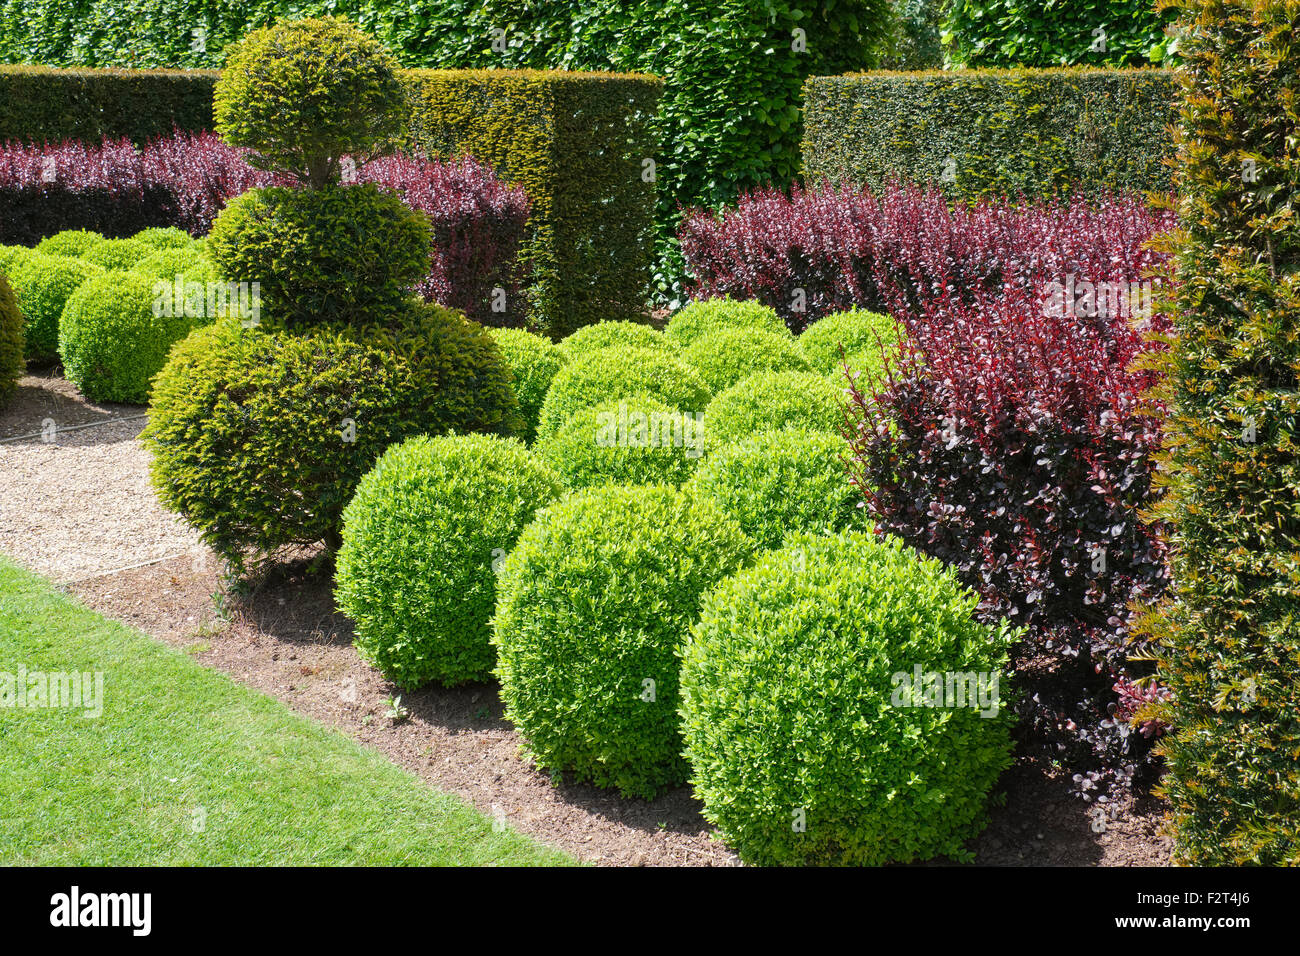 Clipped Buxus spheres bordered with Berberis and Yew Hedging - Stock Image